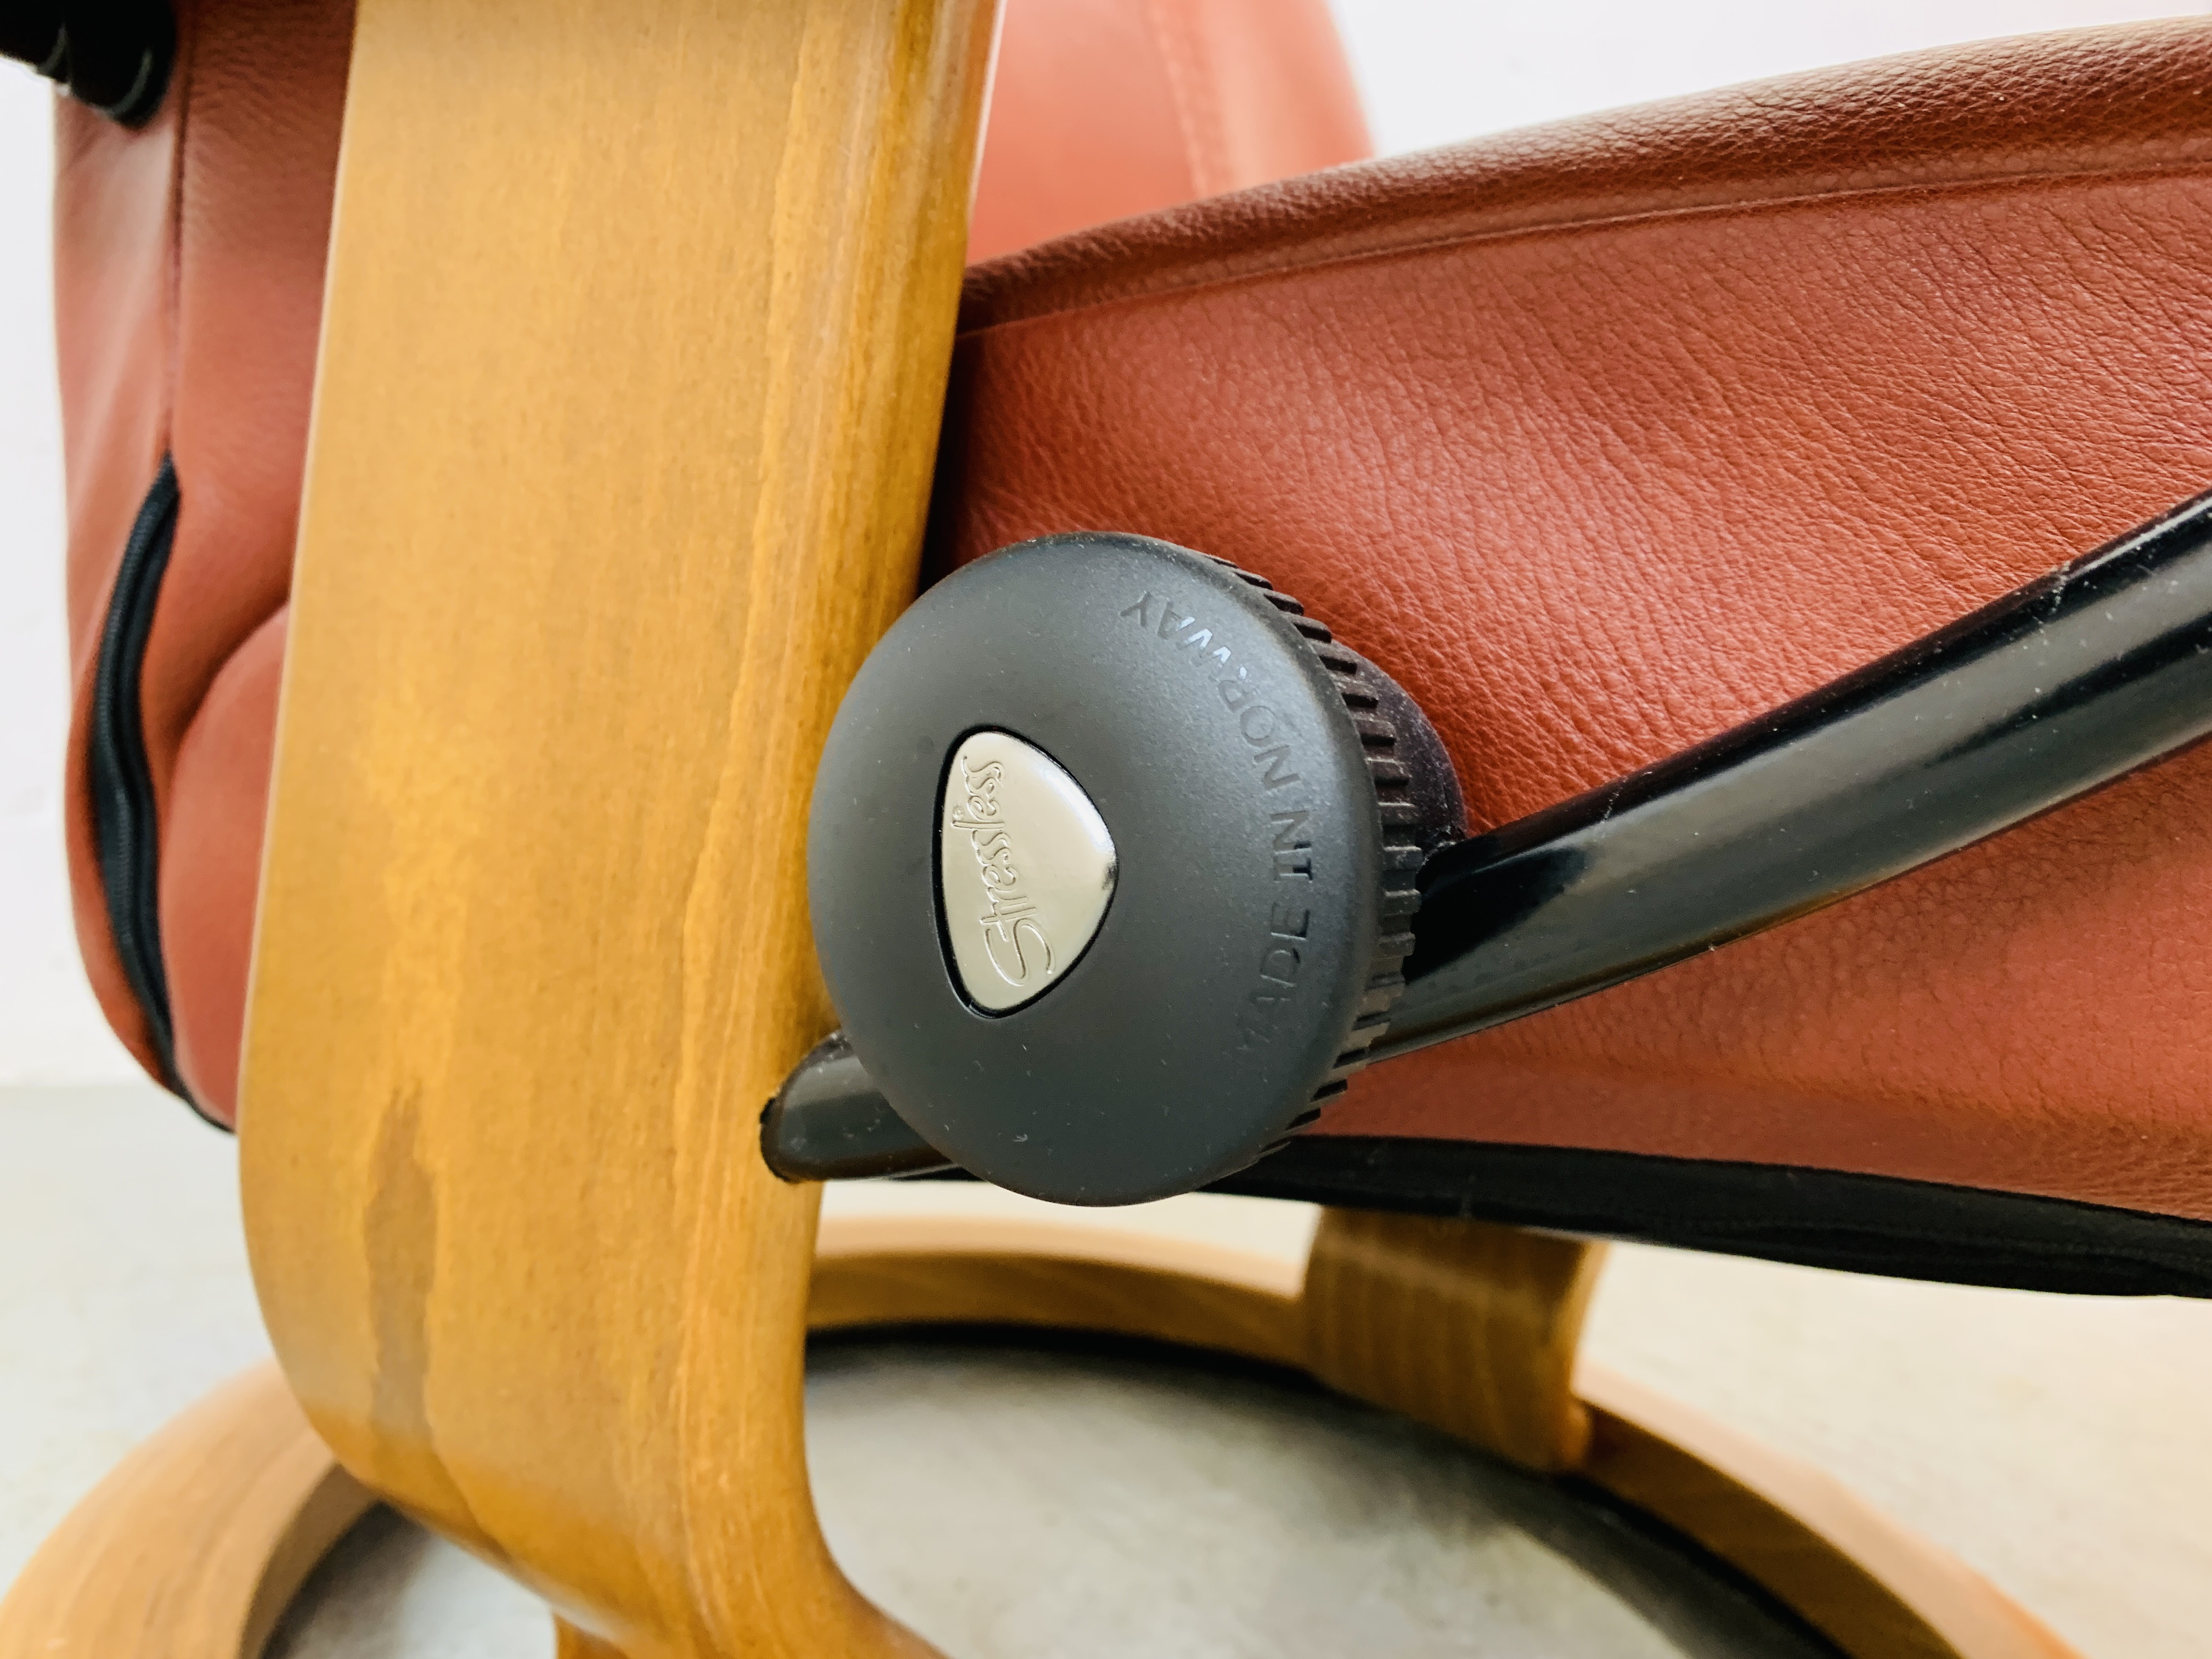 A STRESSLESS TAN LEATHER RELAXER CHAIR - Image 4 of 12